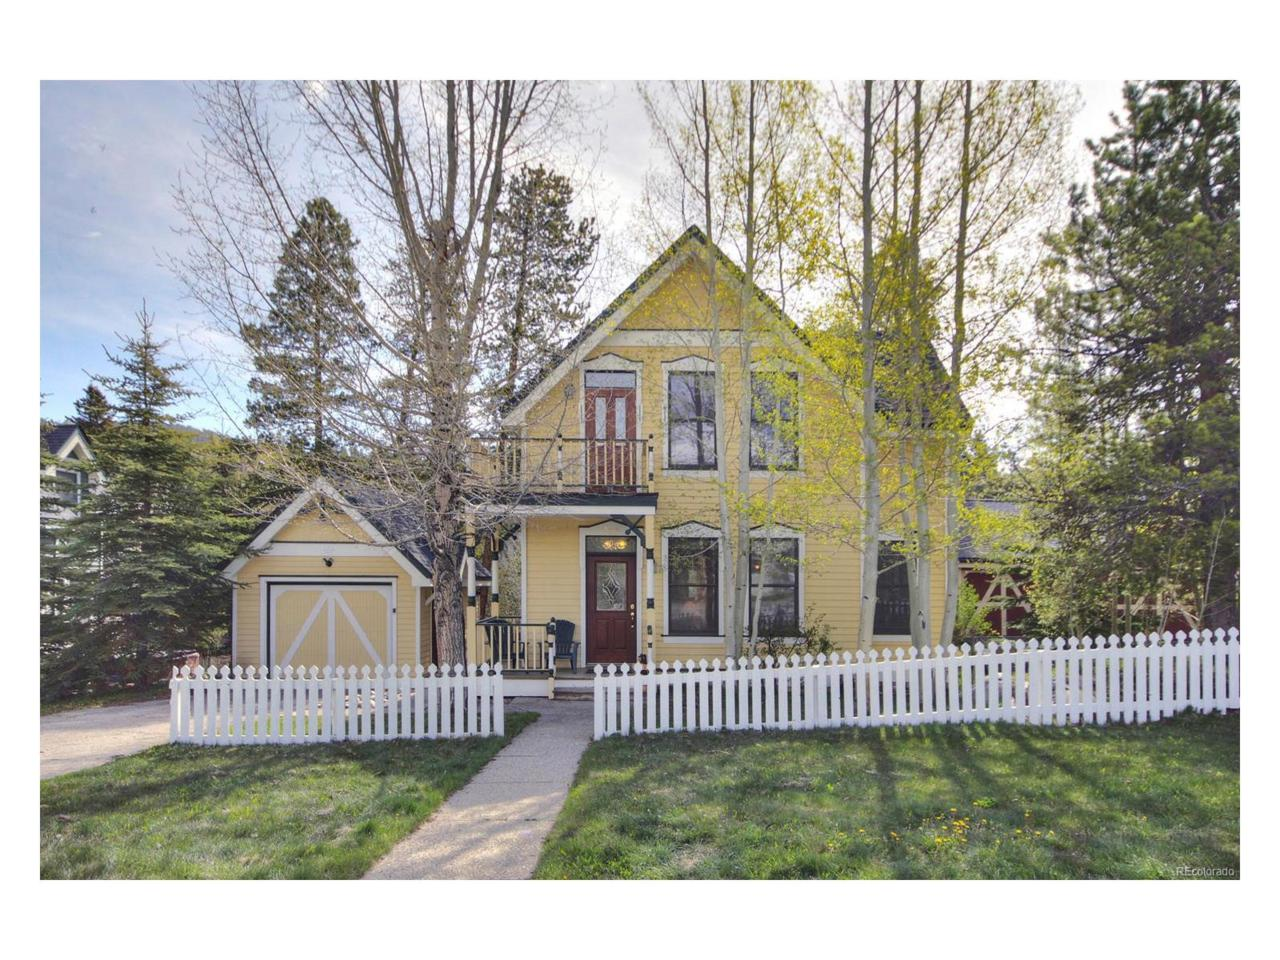 312 N French Street, Breckenridge, CO 80424 (MLS #1692085) :: 8z Real Estate